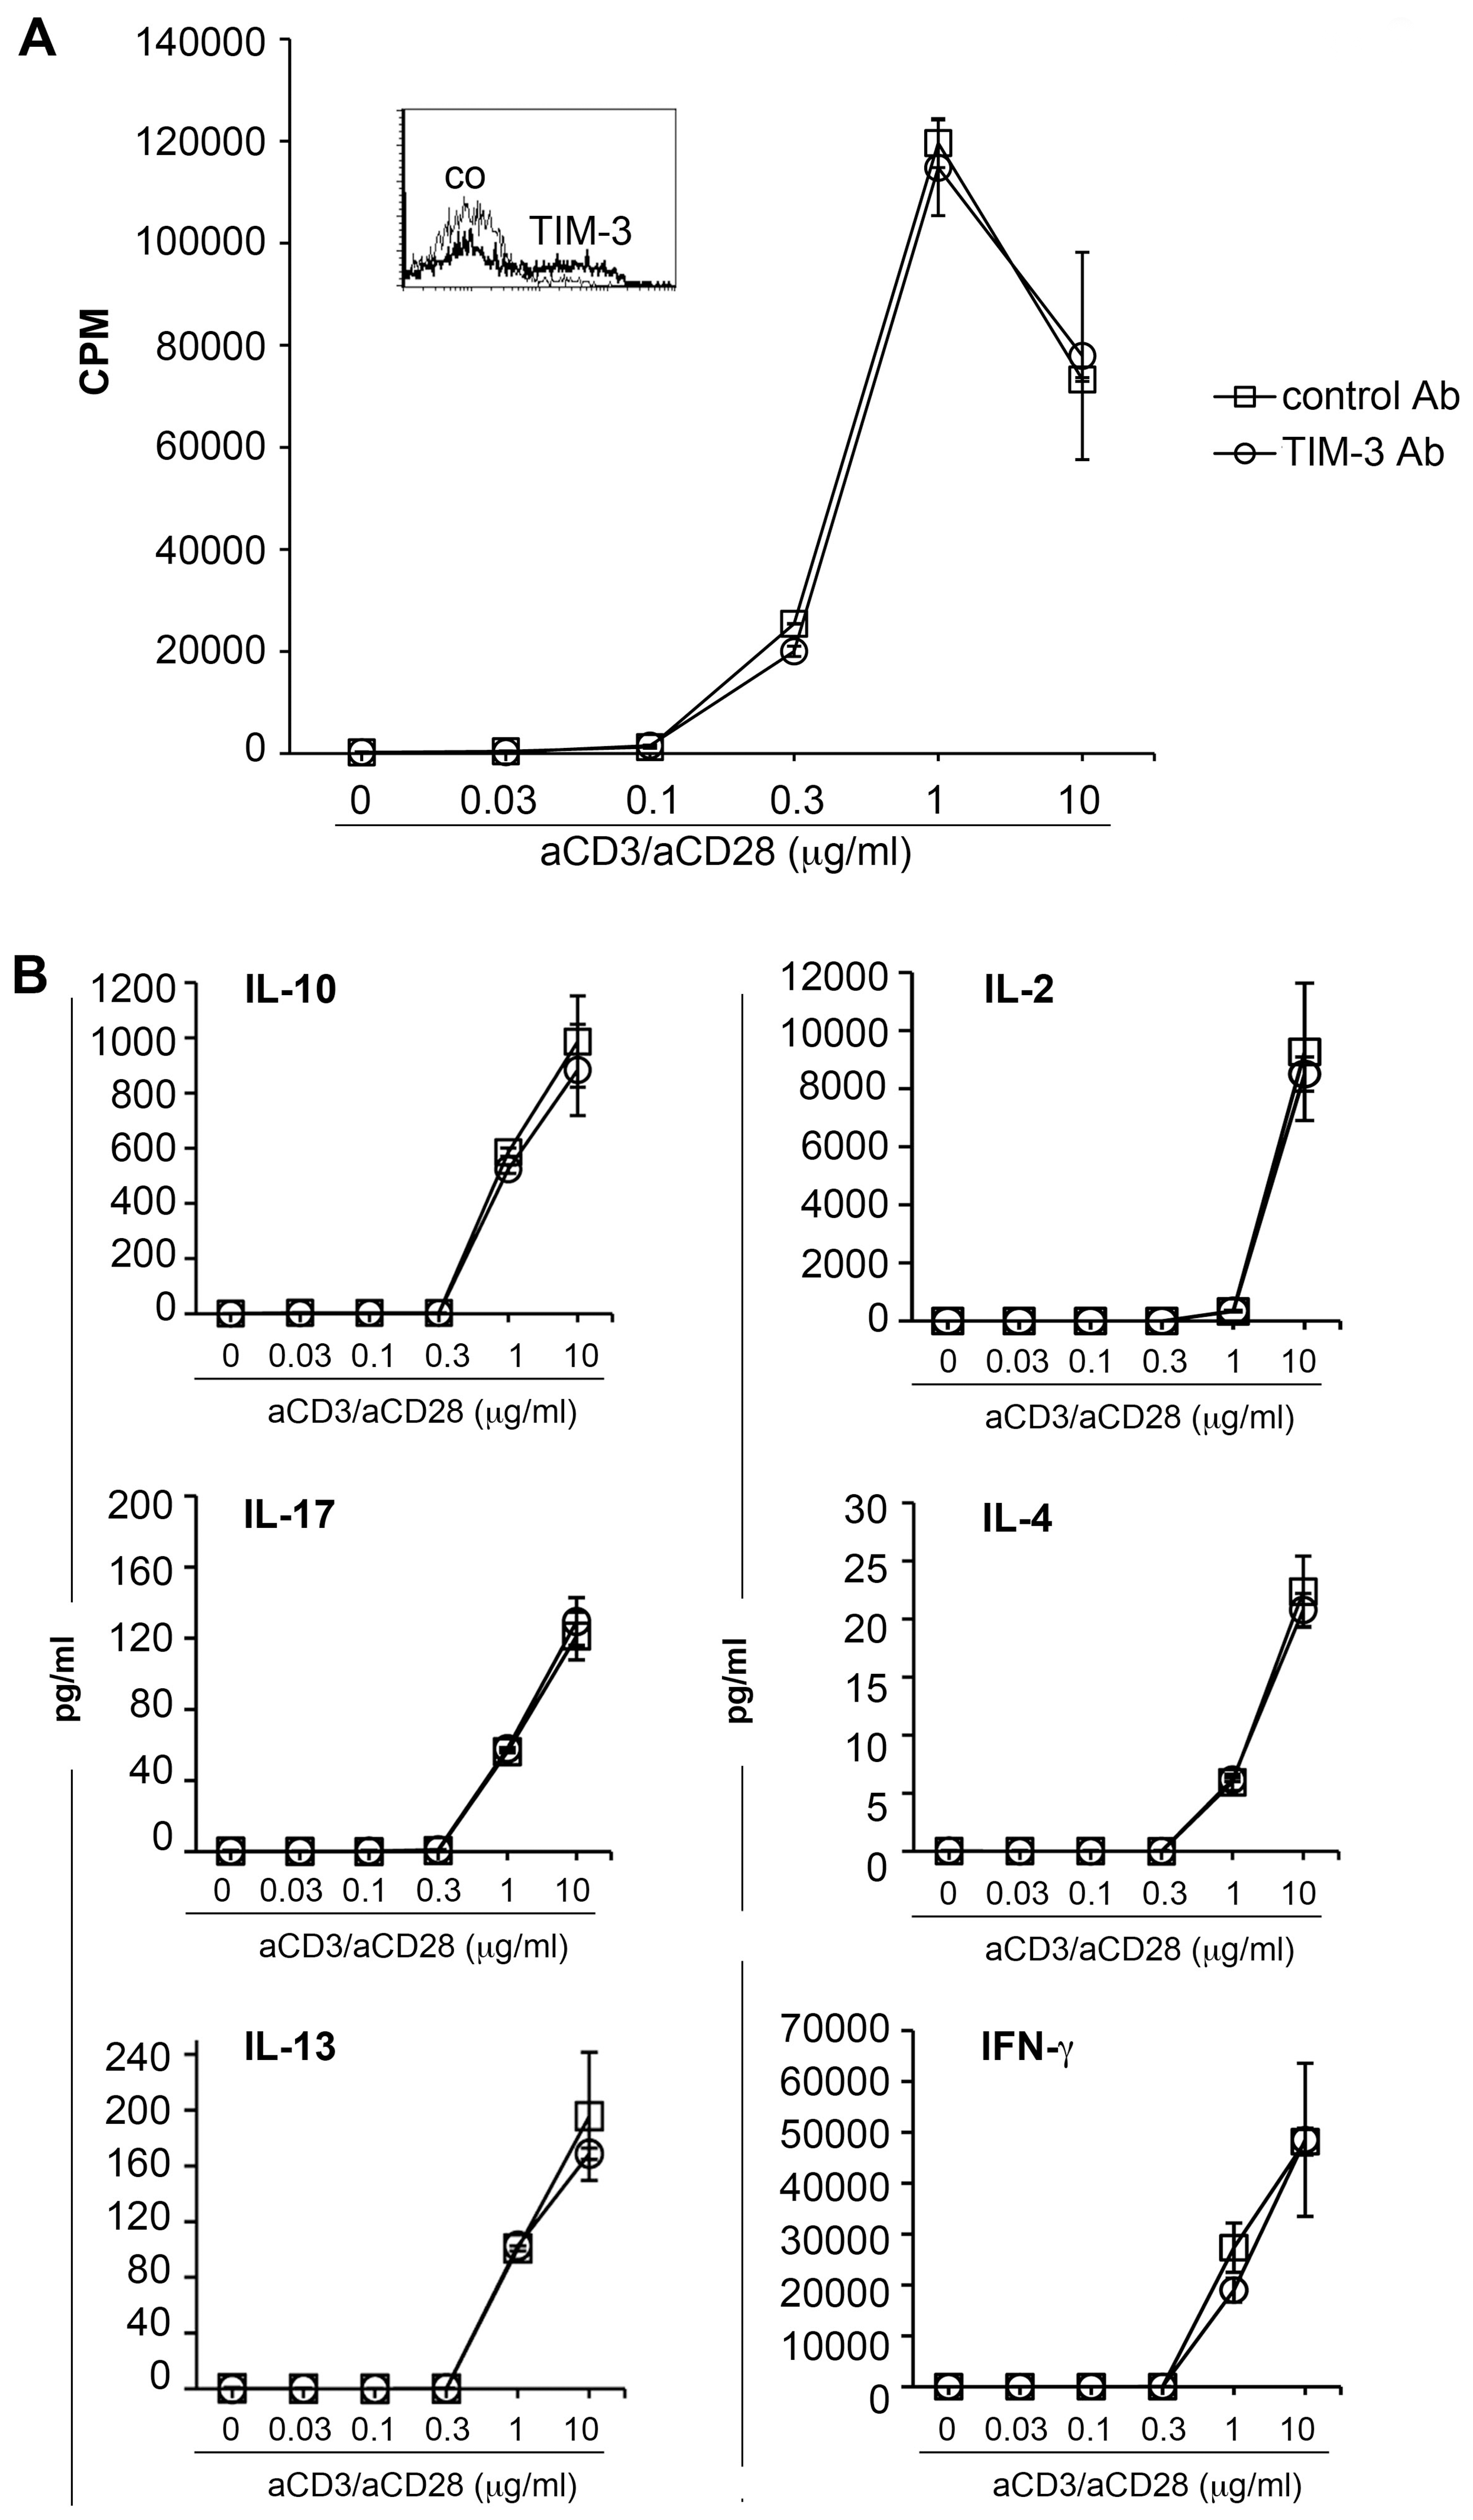 TIM-3 antibodies do not affect human T cell activation.